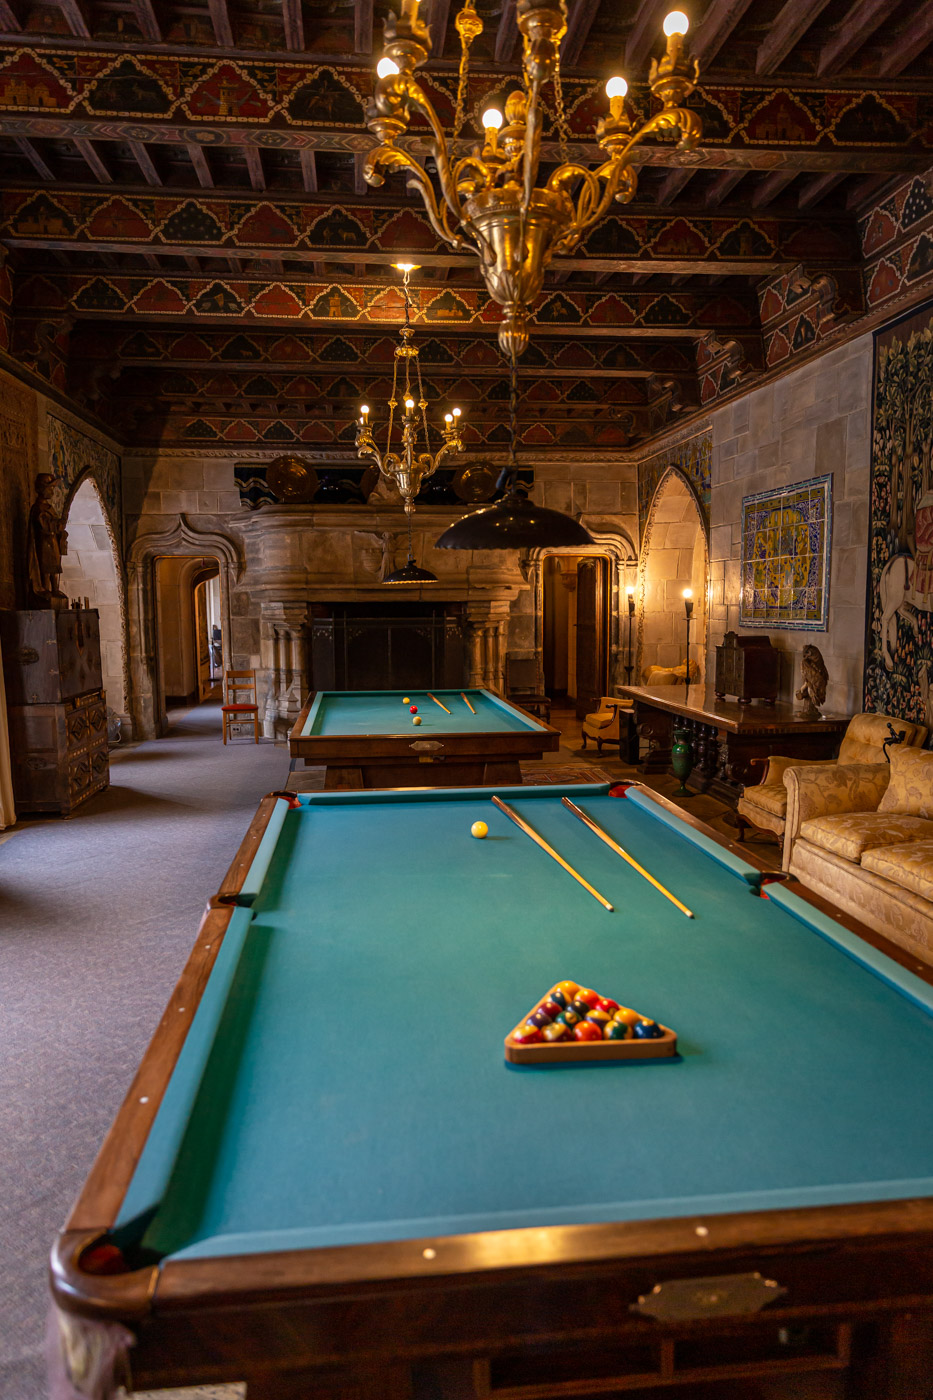 The Billiard Room, Grand Rooms Tour. Hearst Castle Tours